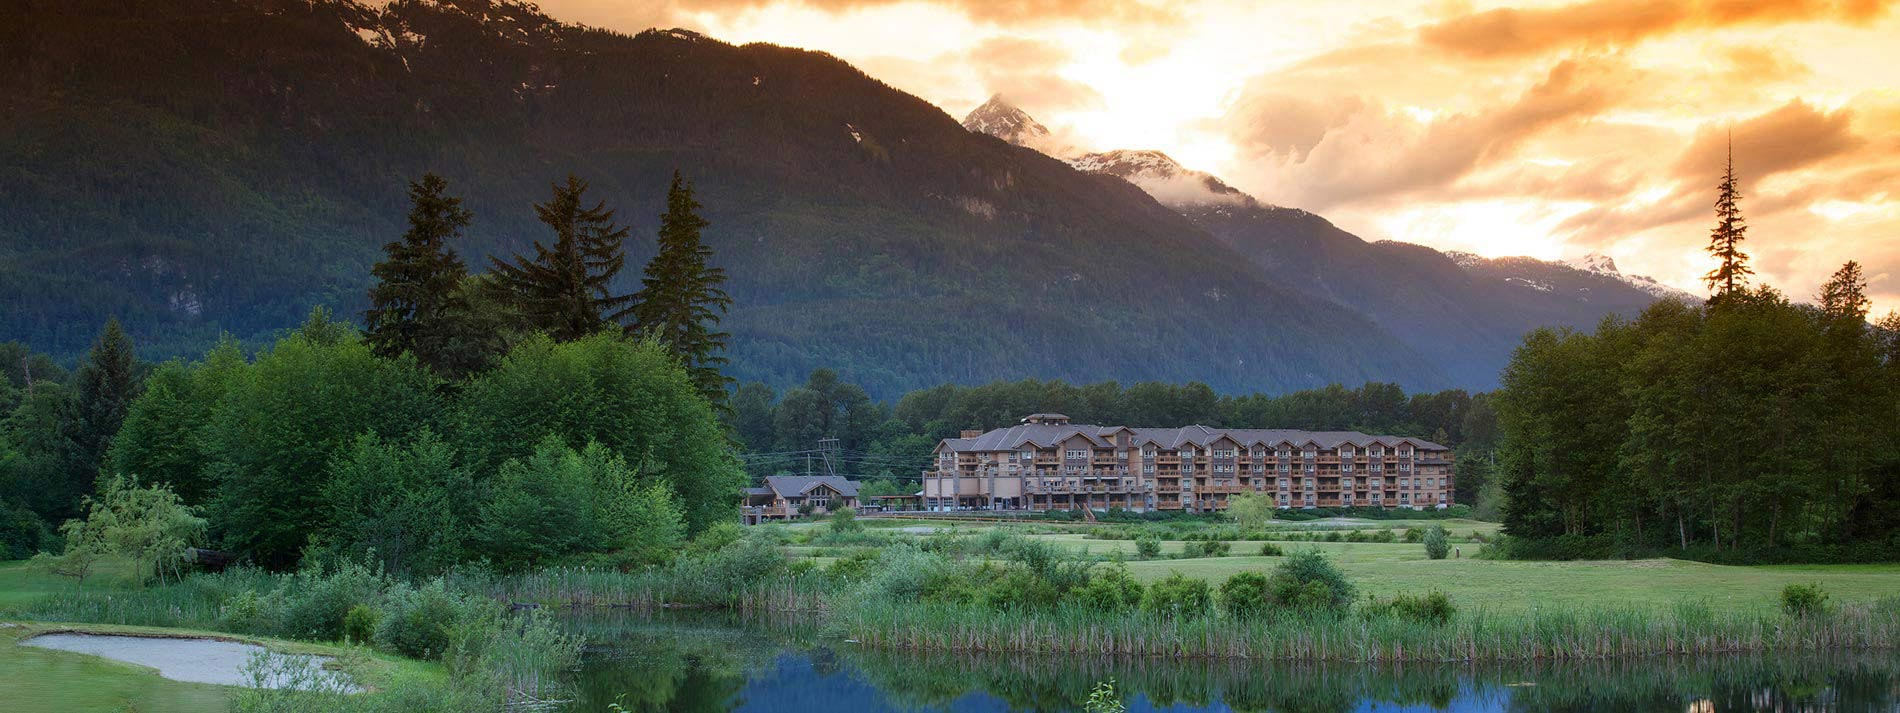 Executive Suites Hotel & Resort Squamish at dusk